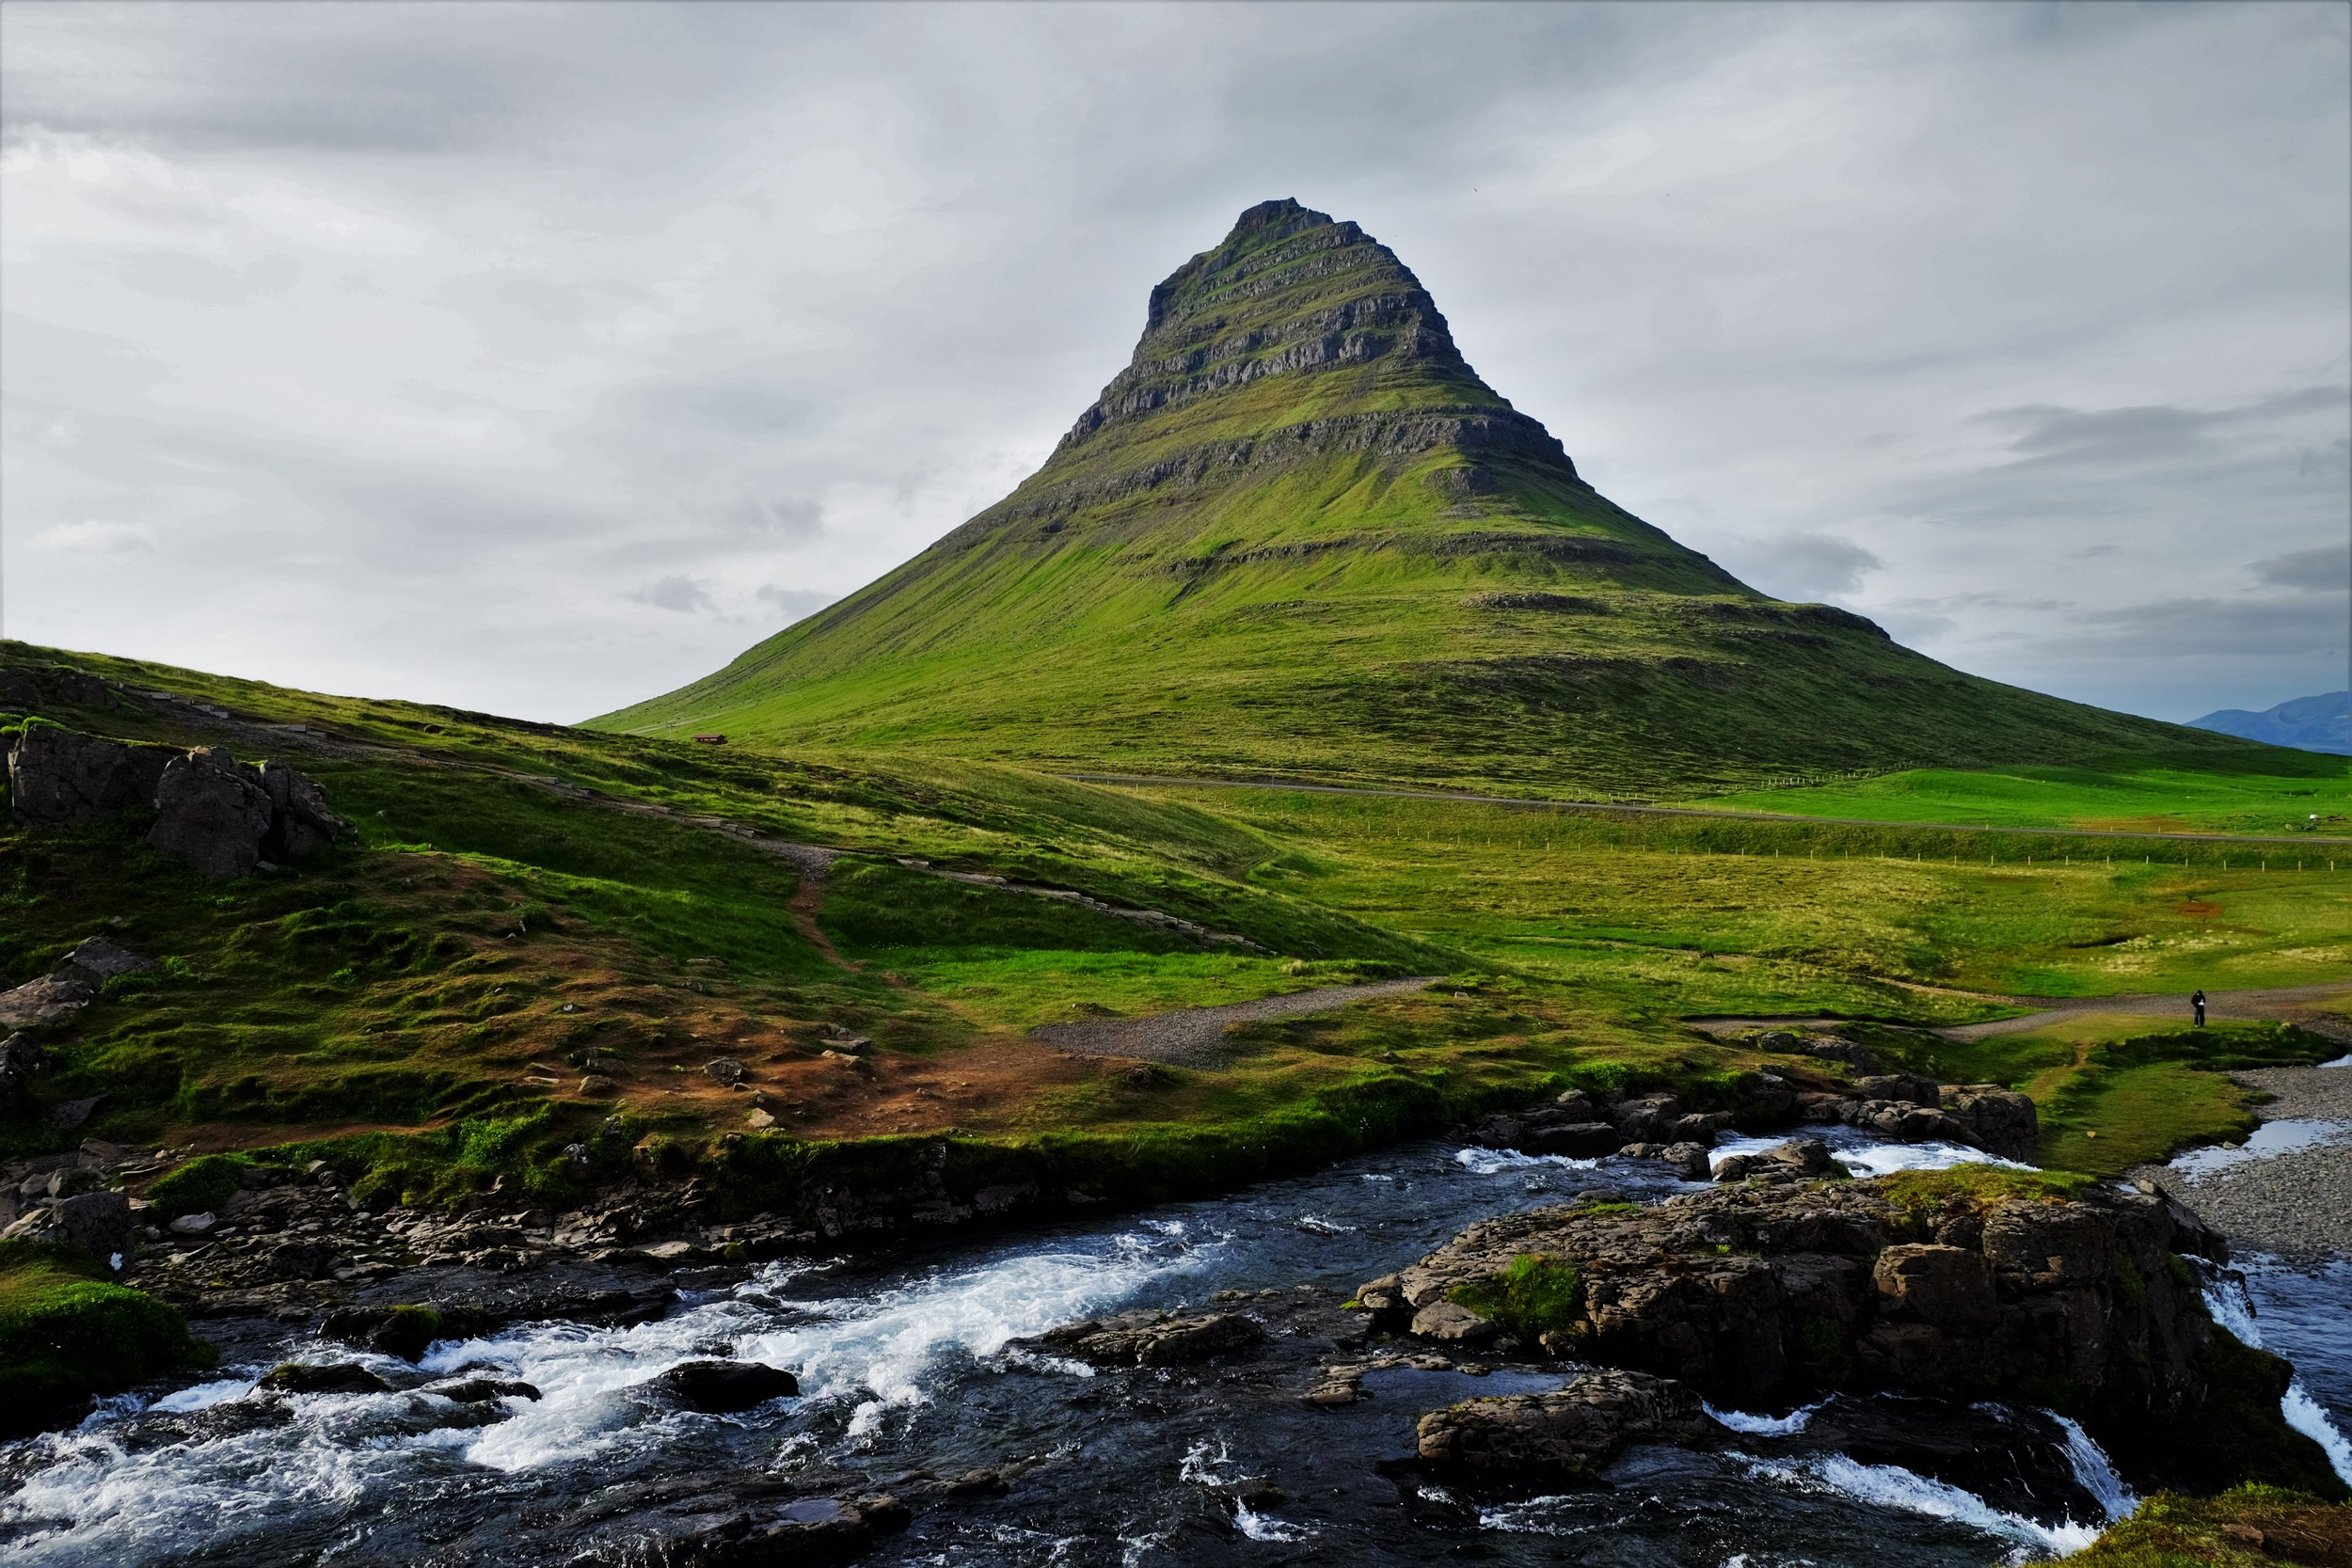 Kirkjufell Mountain, Grundarfjordu: (http://www.west.is/en/west/place/kirkjufell-mountain)